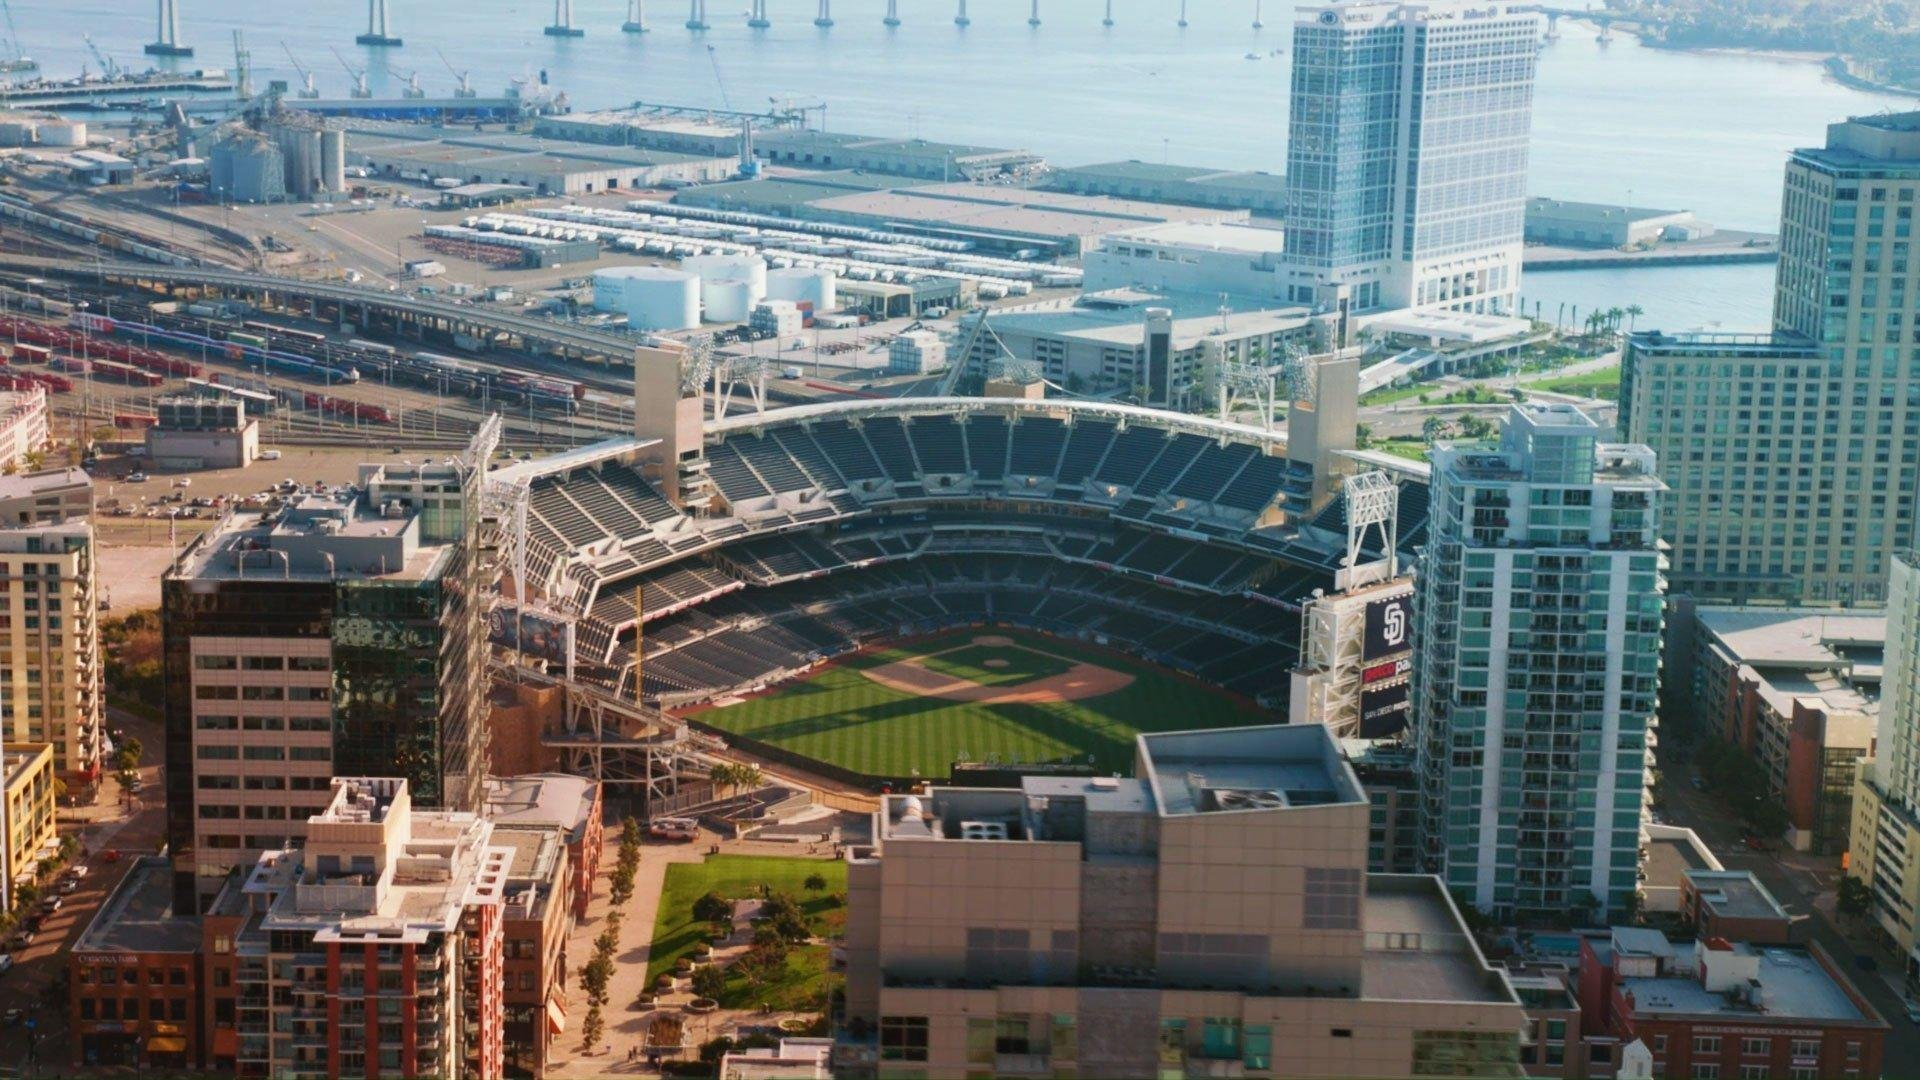 Qualcomm Padres Work On Sustainability At Petco Park